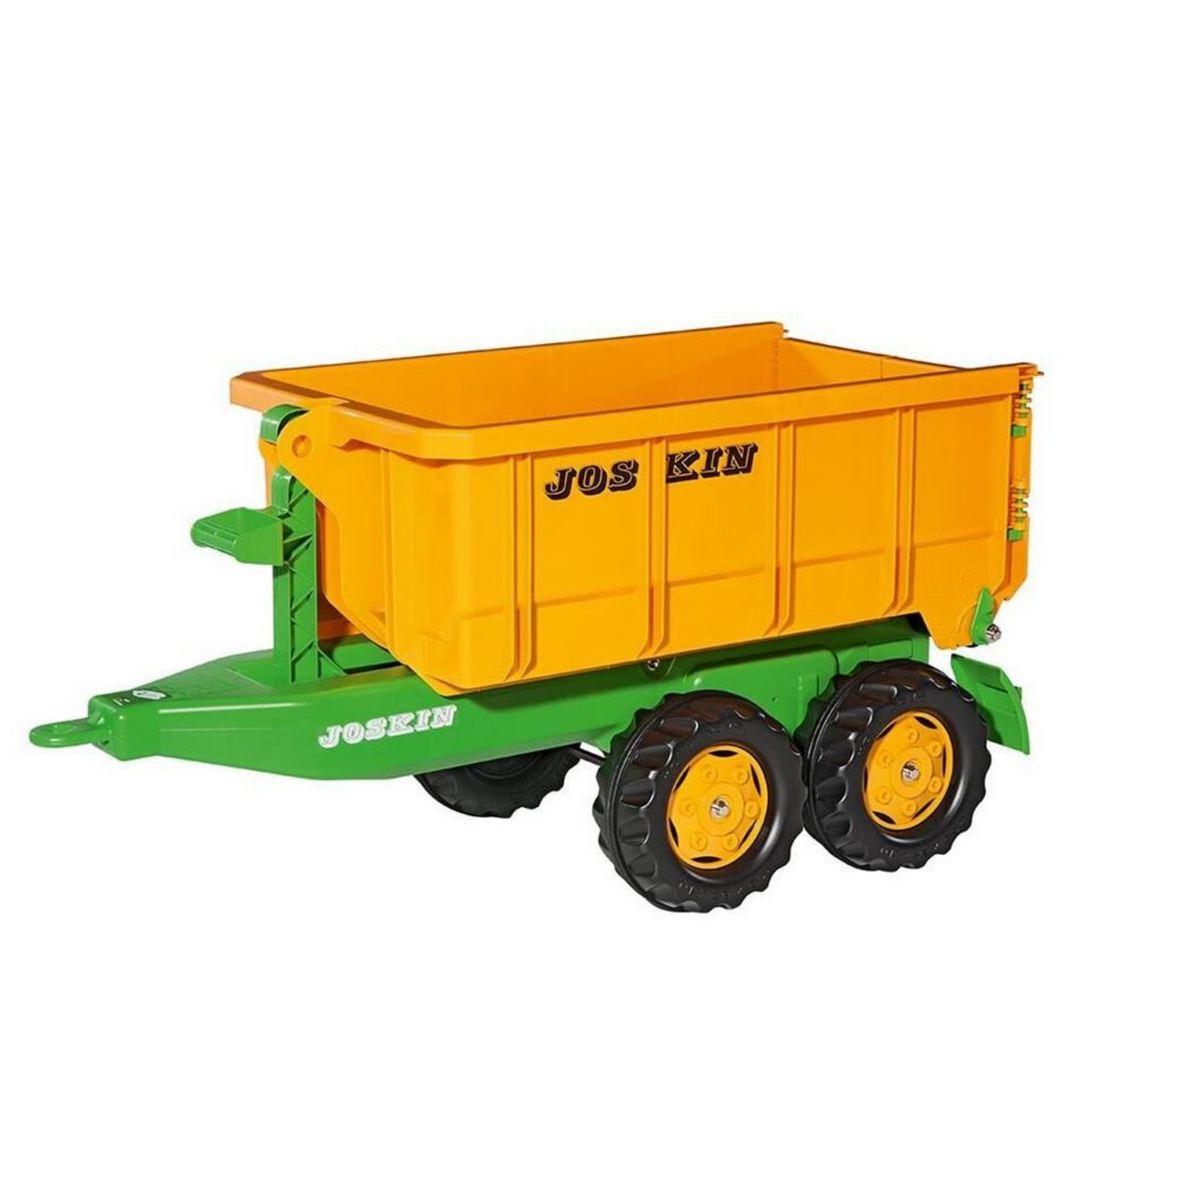 Joskin Tipping Trailer for Ride On Tractor